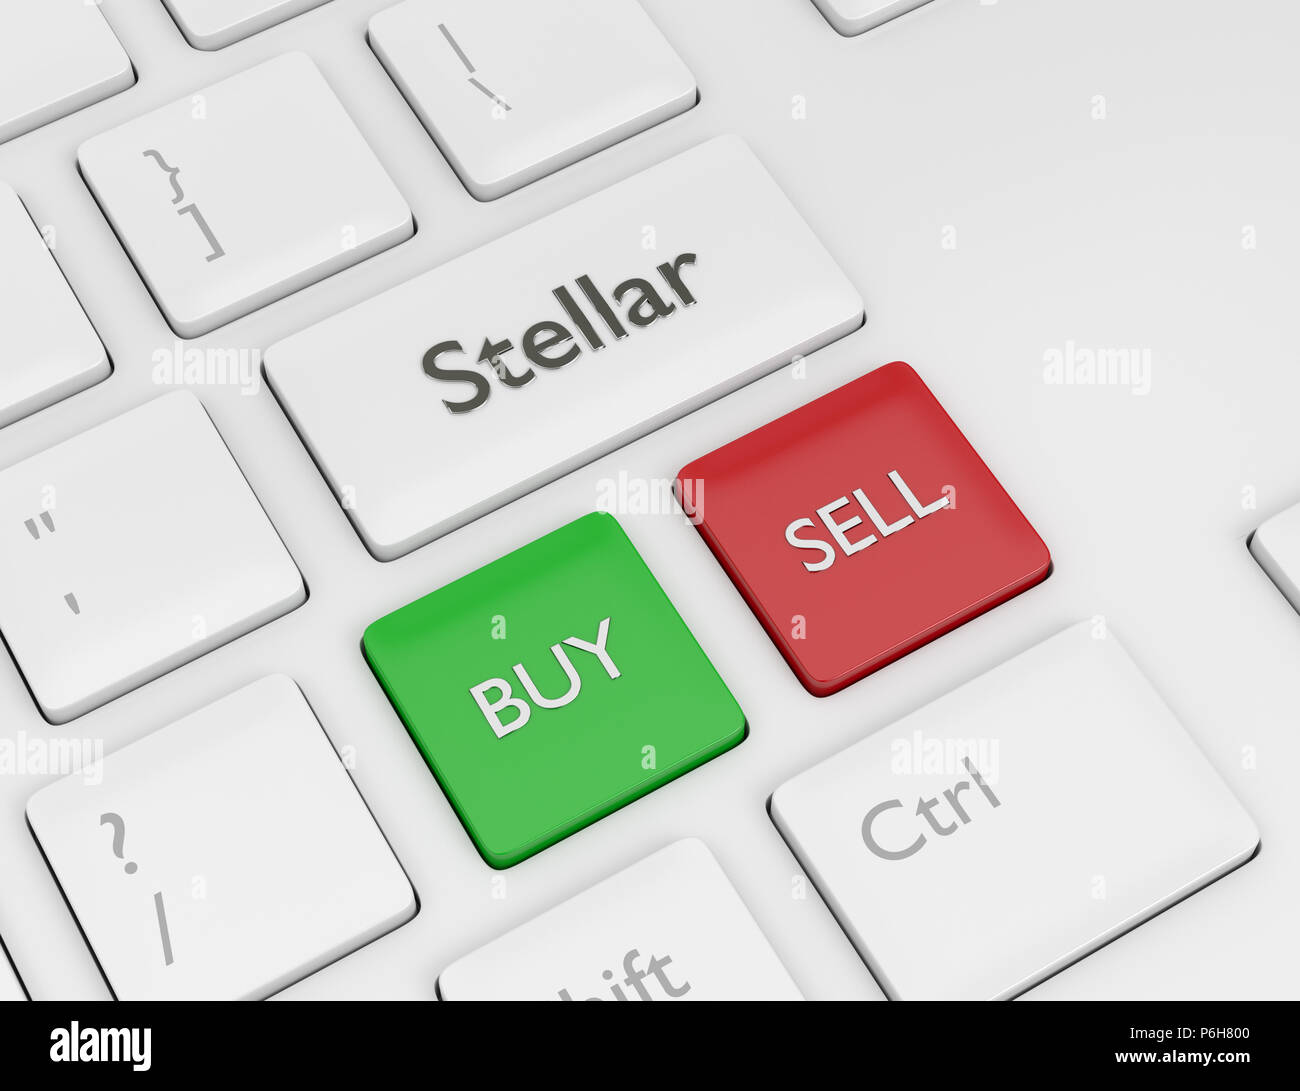 3d render of computer keyboard with Stellar button. Cryptocurrencies concept. - Stock Image